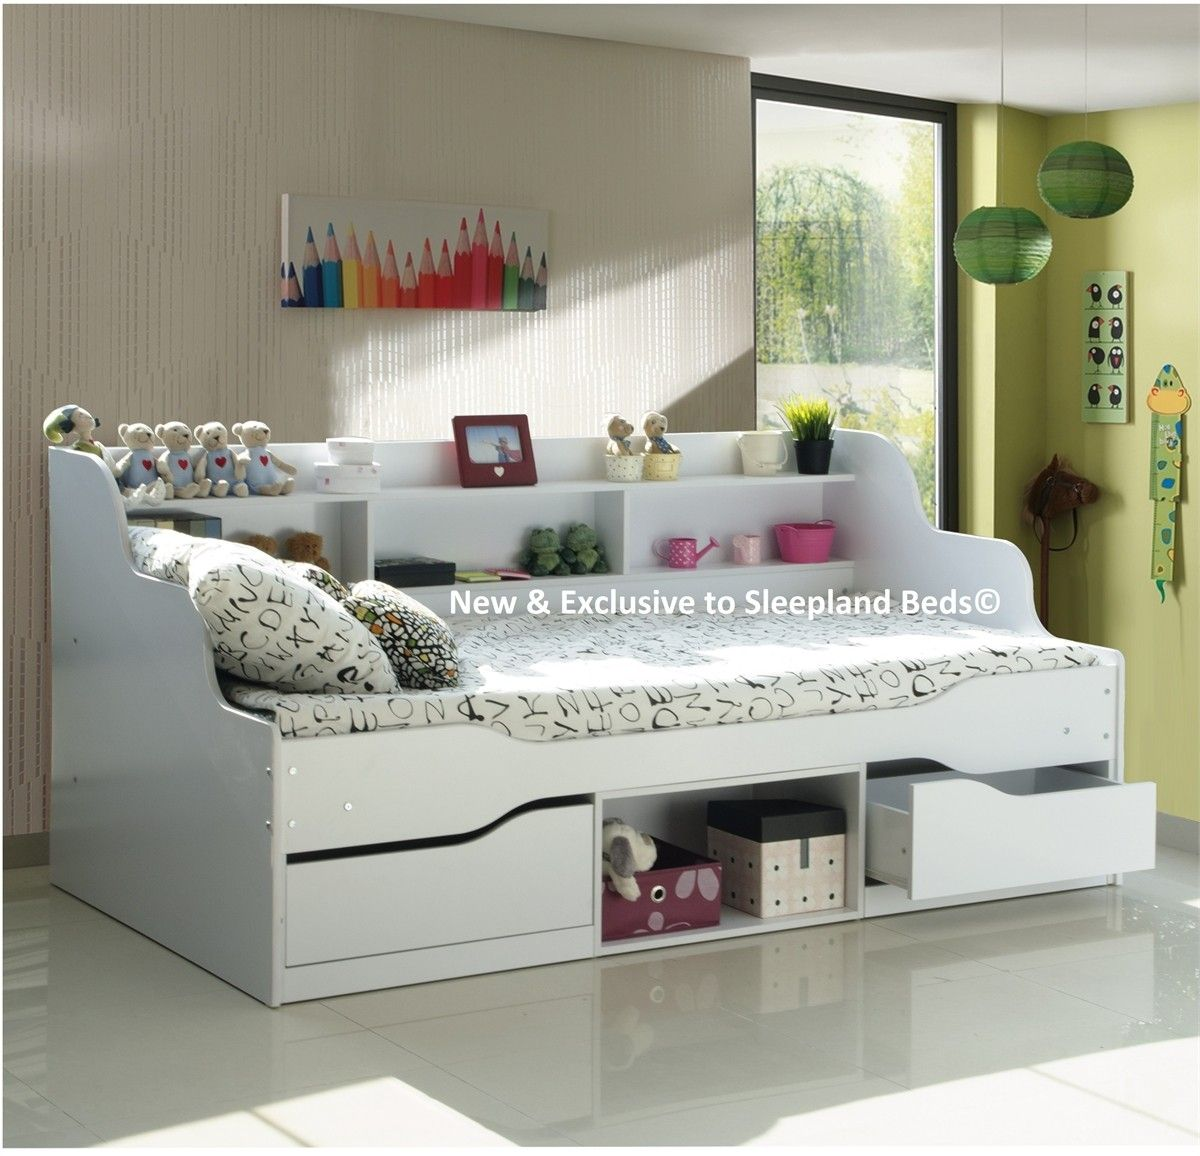 Single bed frame with drawers - Almeria White Single Bed Frame White Bed Frame With Storage Under The Single Bed And Shelves Across The Entire Back